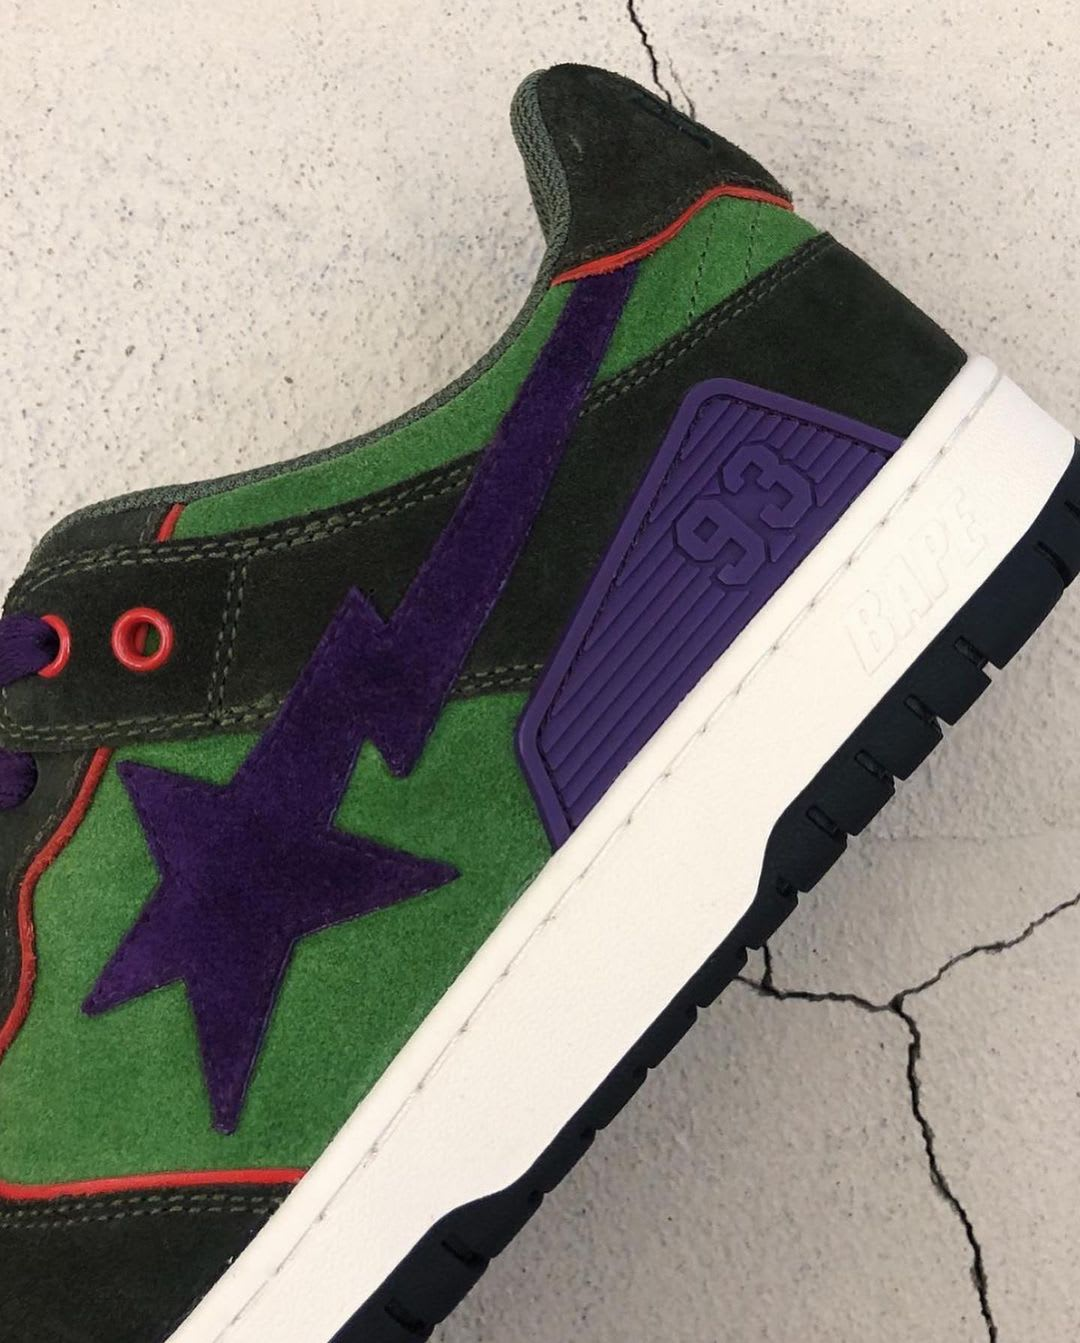 Bape Sk8 Sta Green/Red/Purple First Look Side